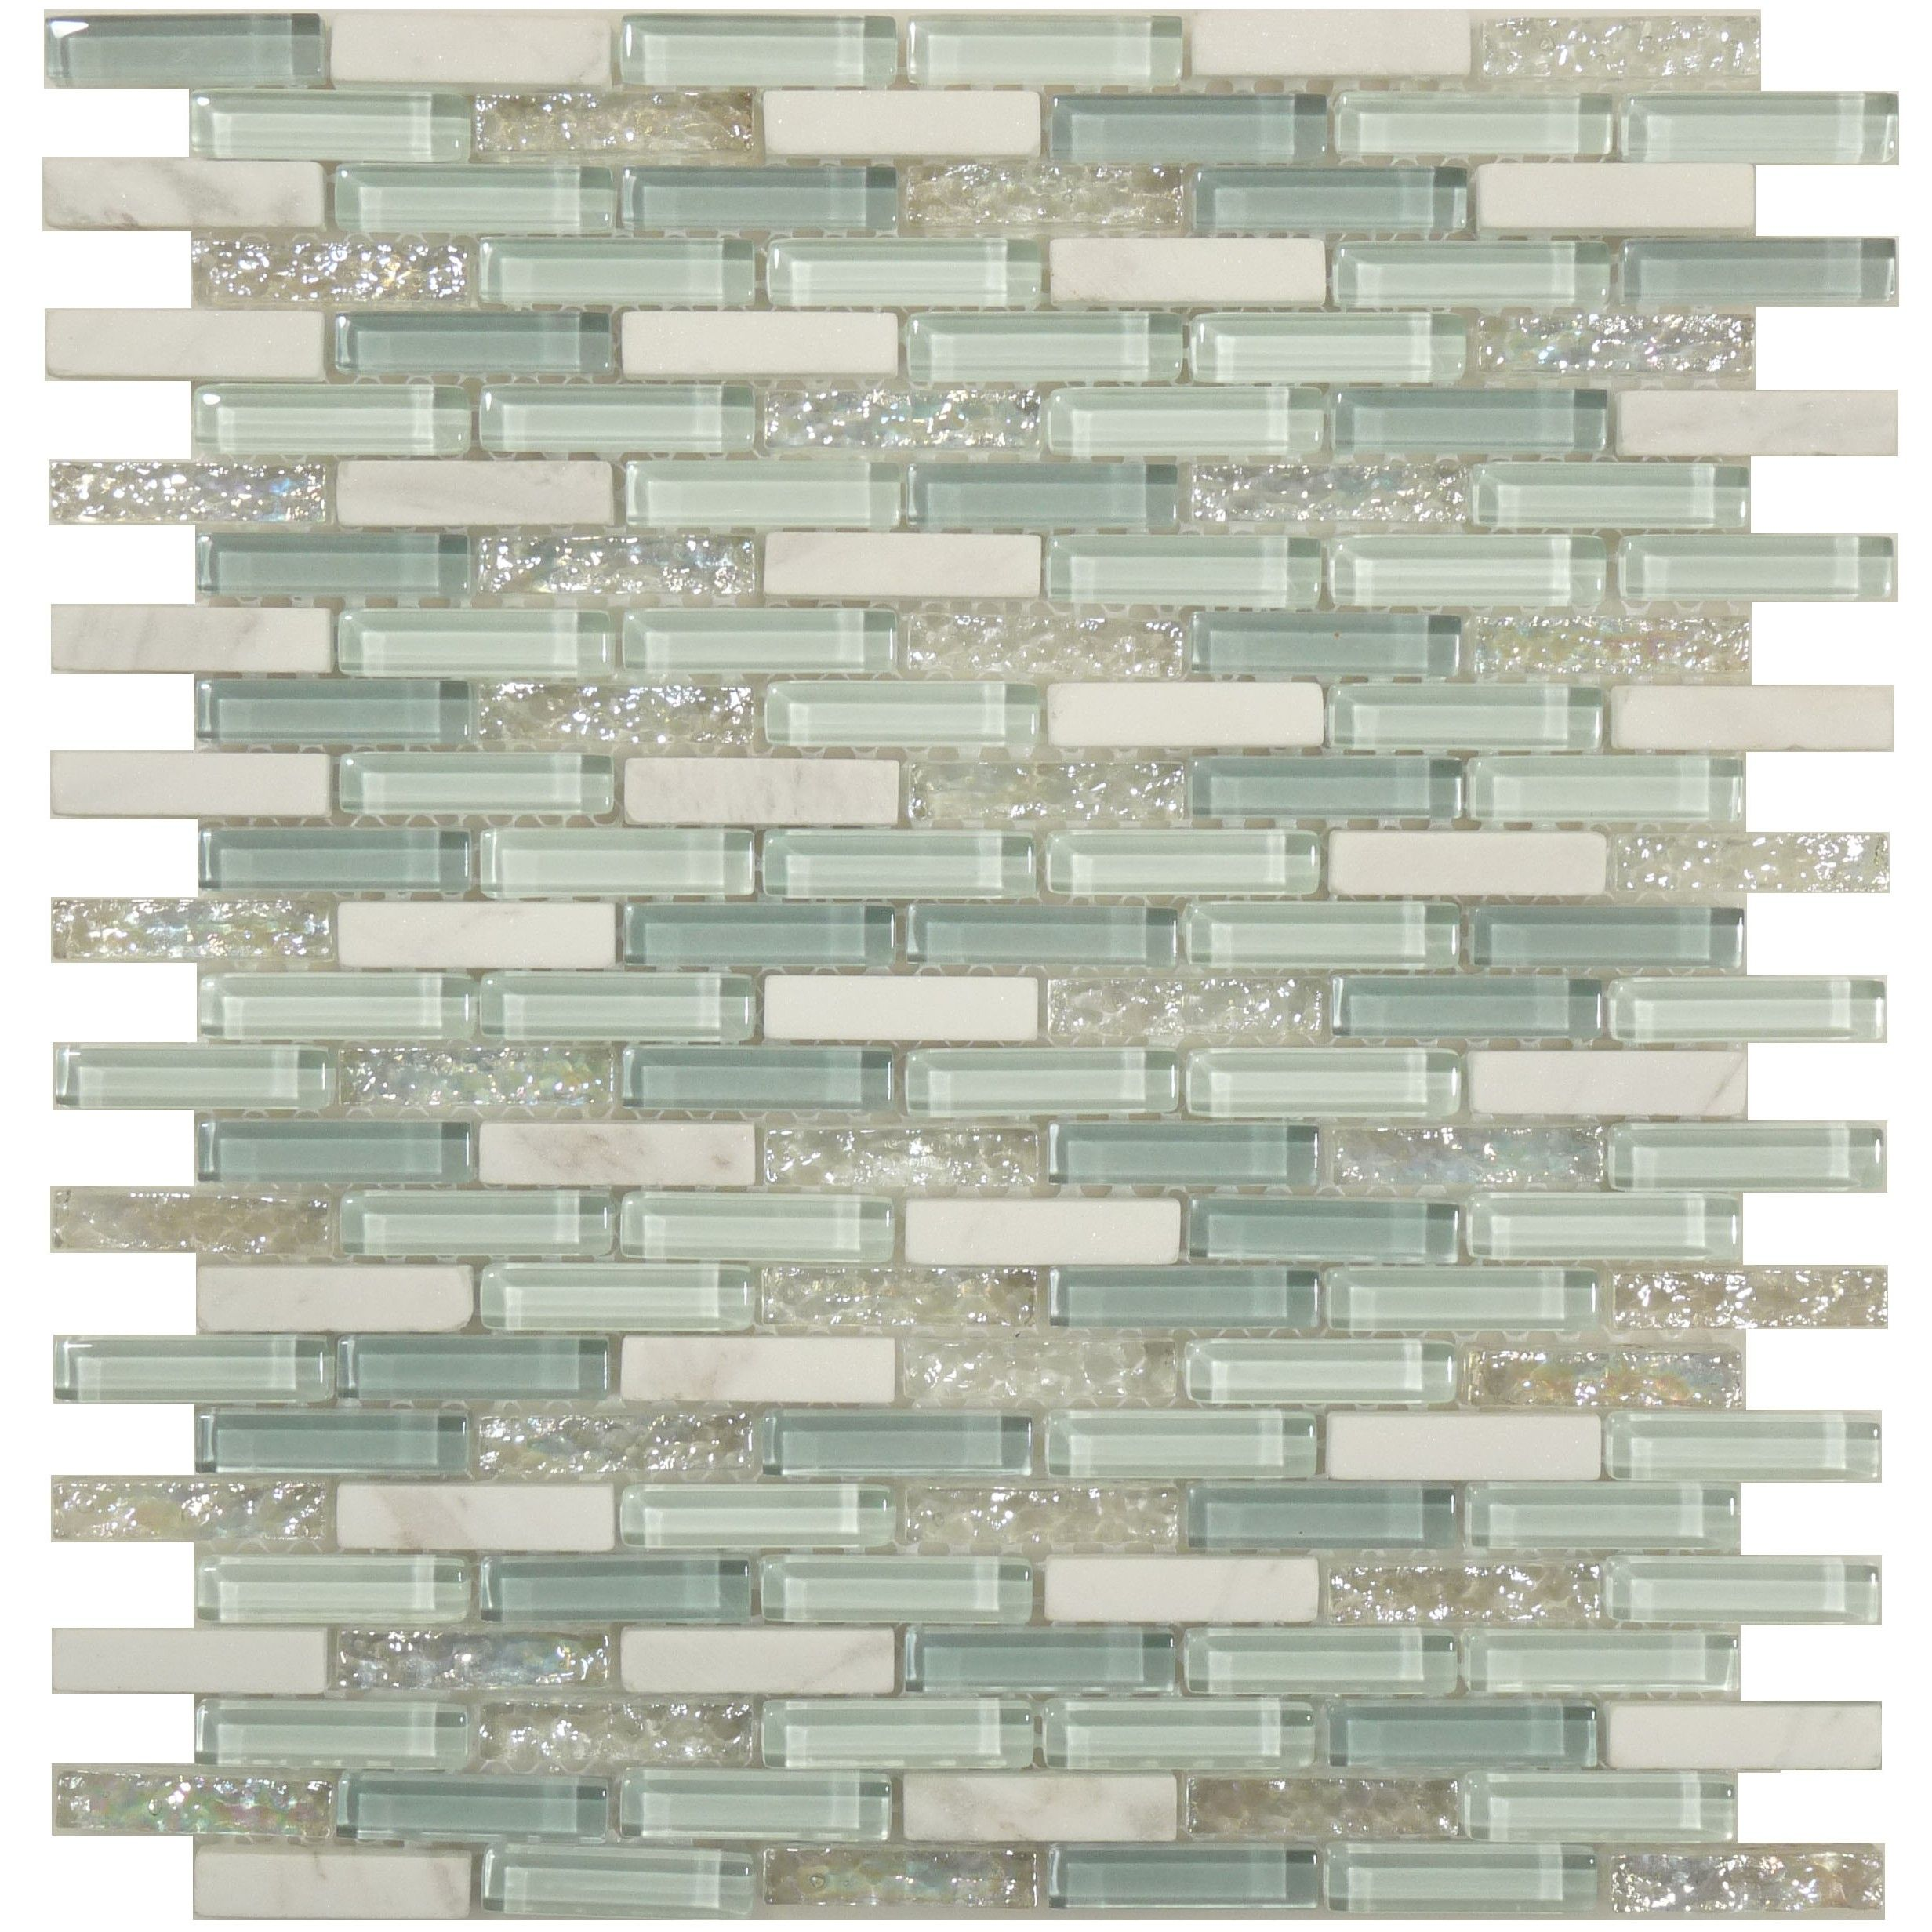 Sheet Size 11 X 11 1 4 Tile Size 3 8 X 1 5 8 Tiles Per Sheet 156 Tile Thickness 1 4 Grout Joints 1 8 Sheet Mou